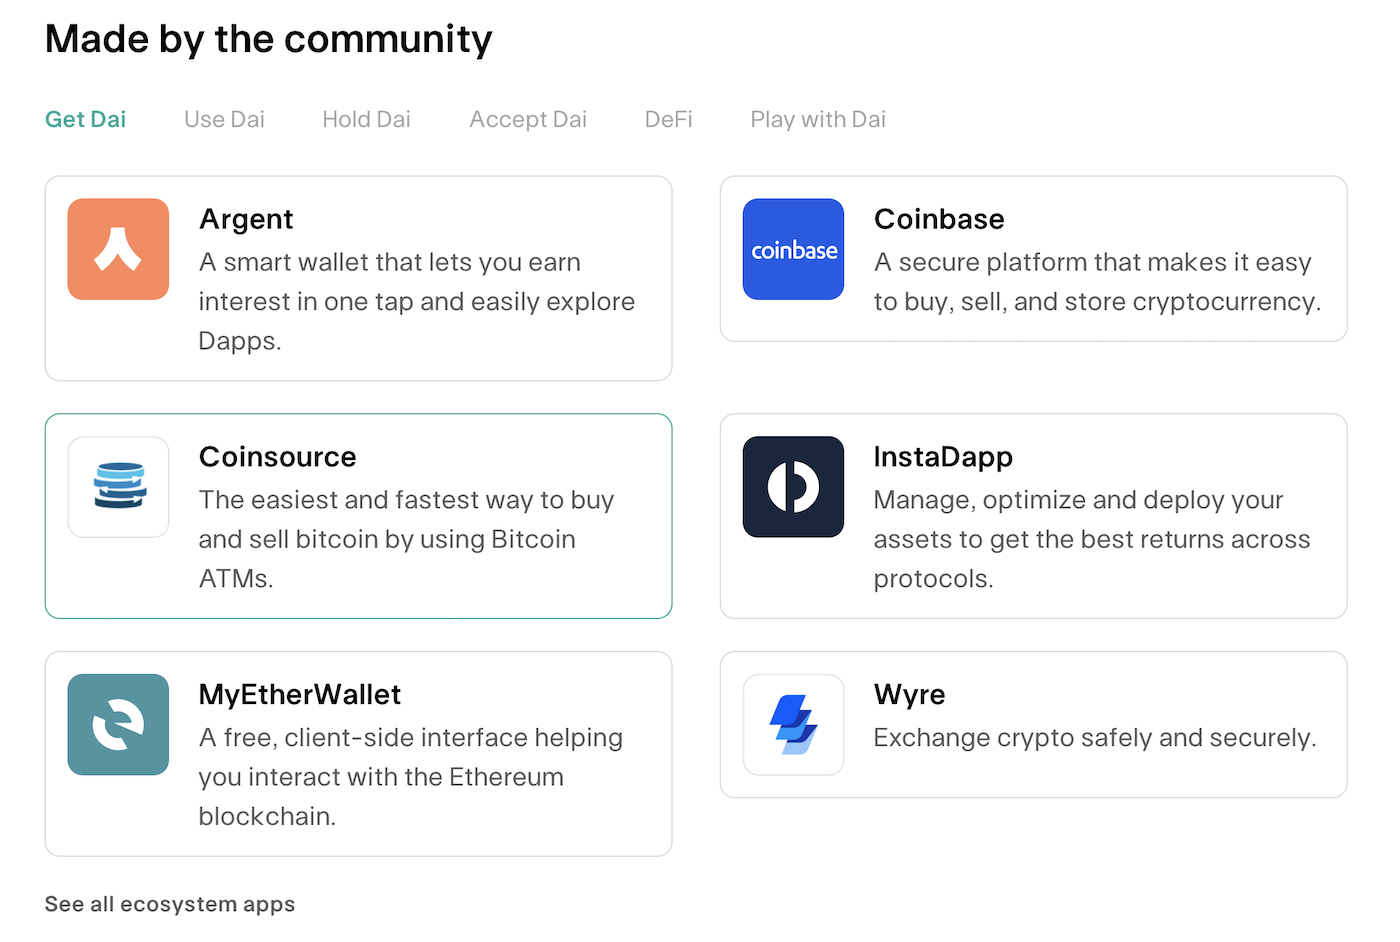 The many dapps in the Maker ecosystem support the top 10 uses cases of the Dai stablecoin.